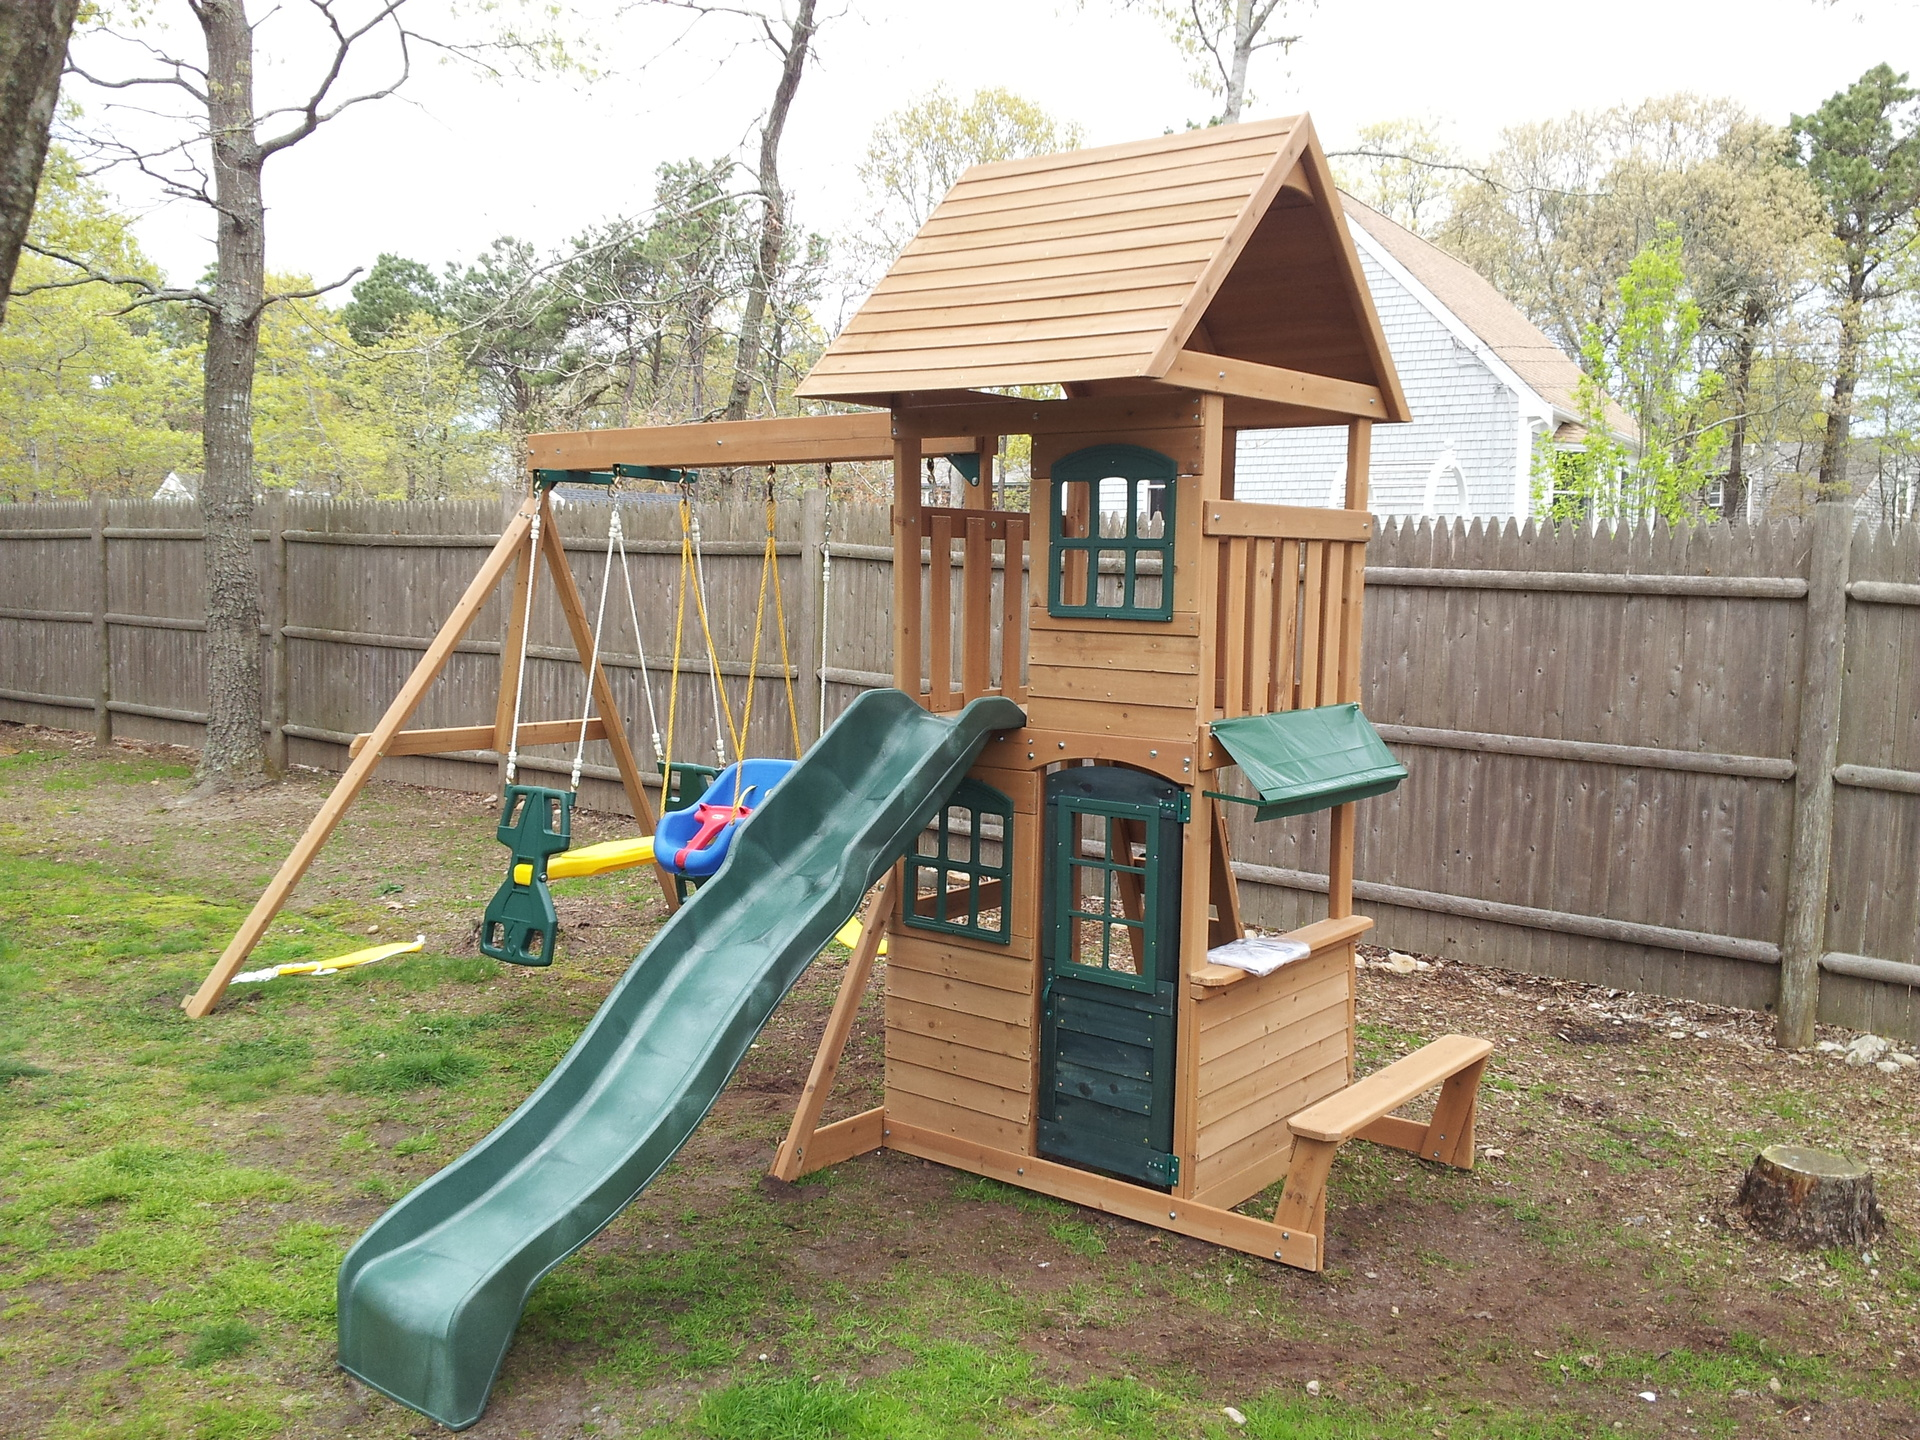 Big Backyard Windale : Big Backyard Windale Swing Set  2017  2018 Best Cars Reviews